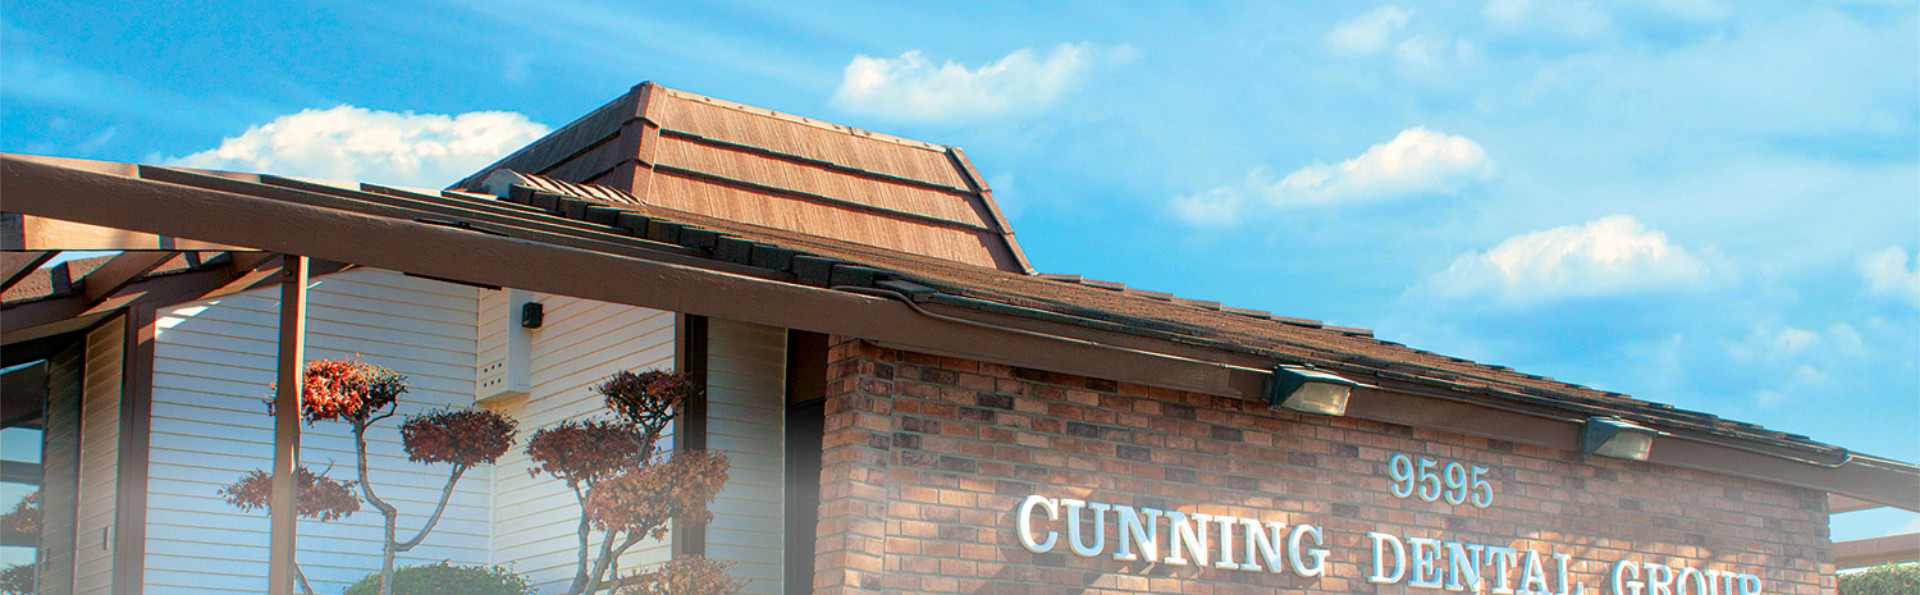 Cunning Dental has been a Montclair fixture for over 40 years